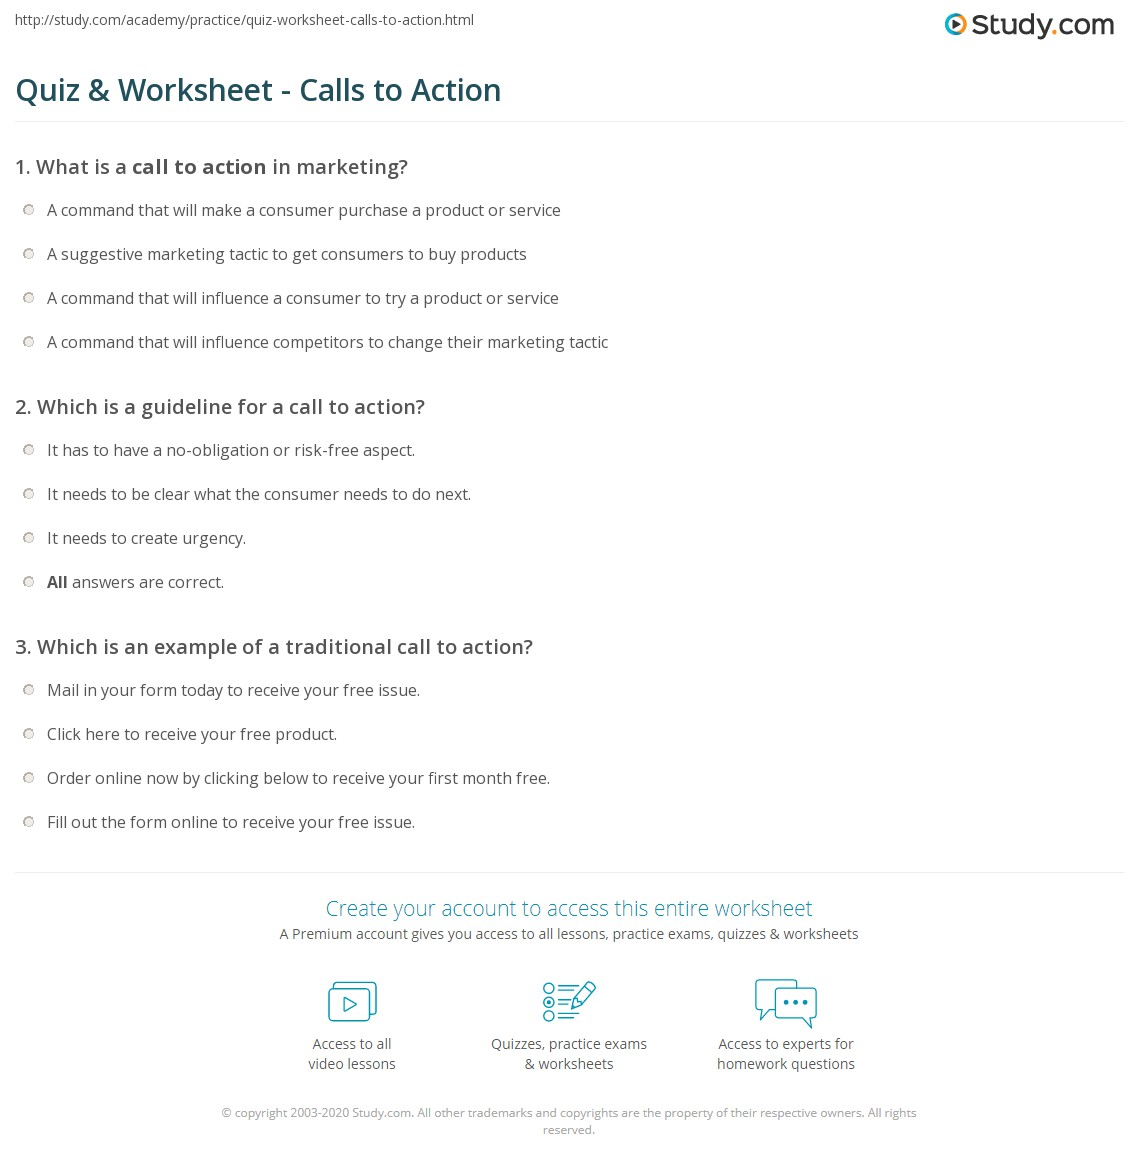 quiz & worksheet - calls to action | study